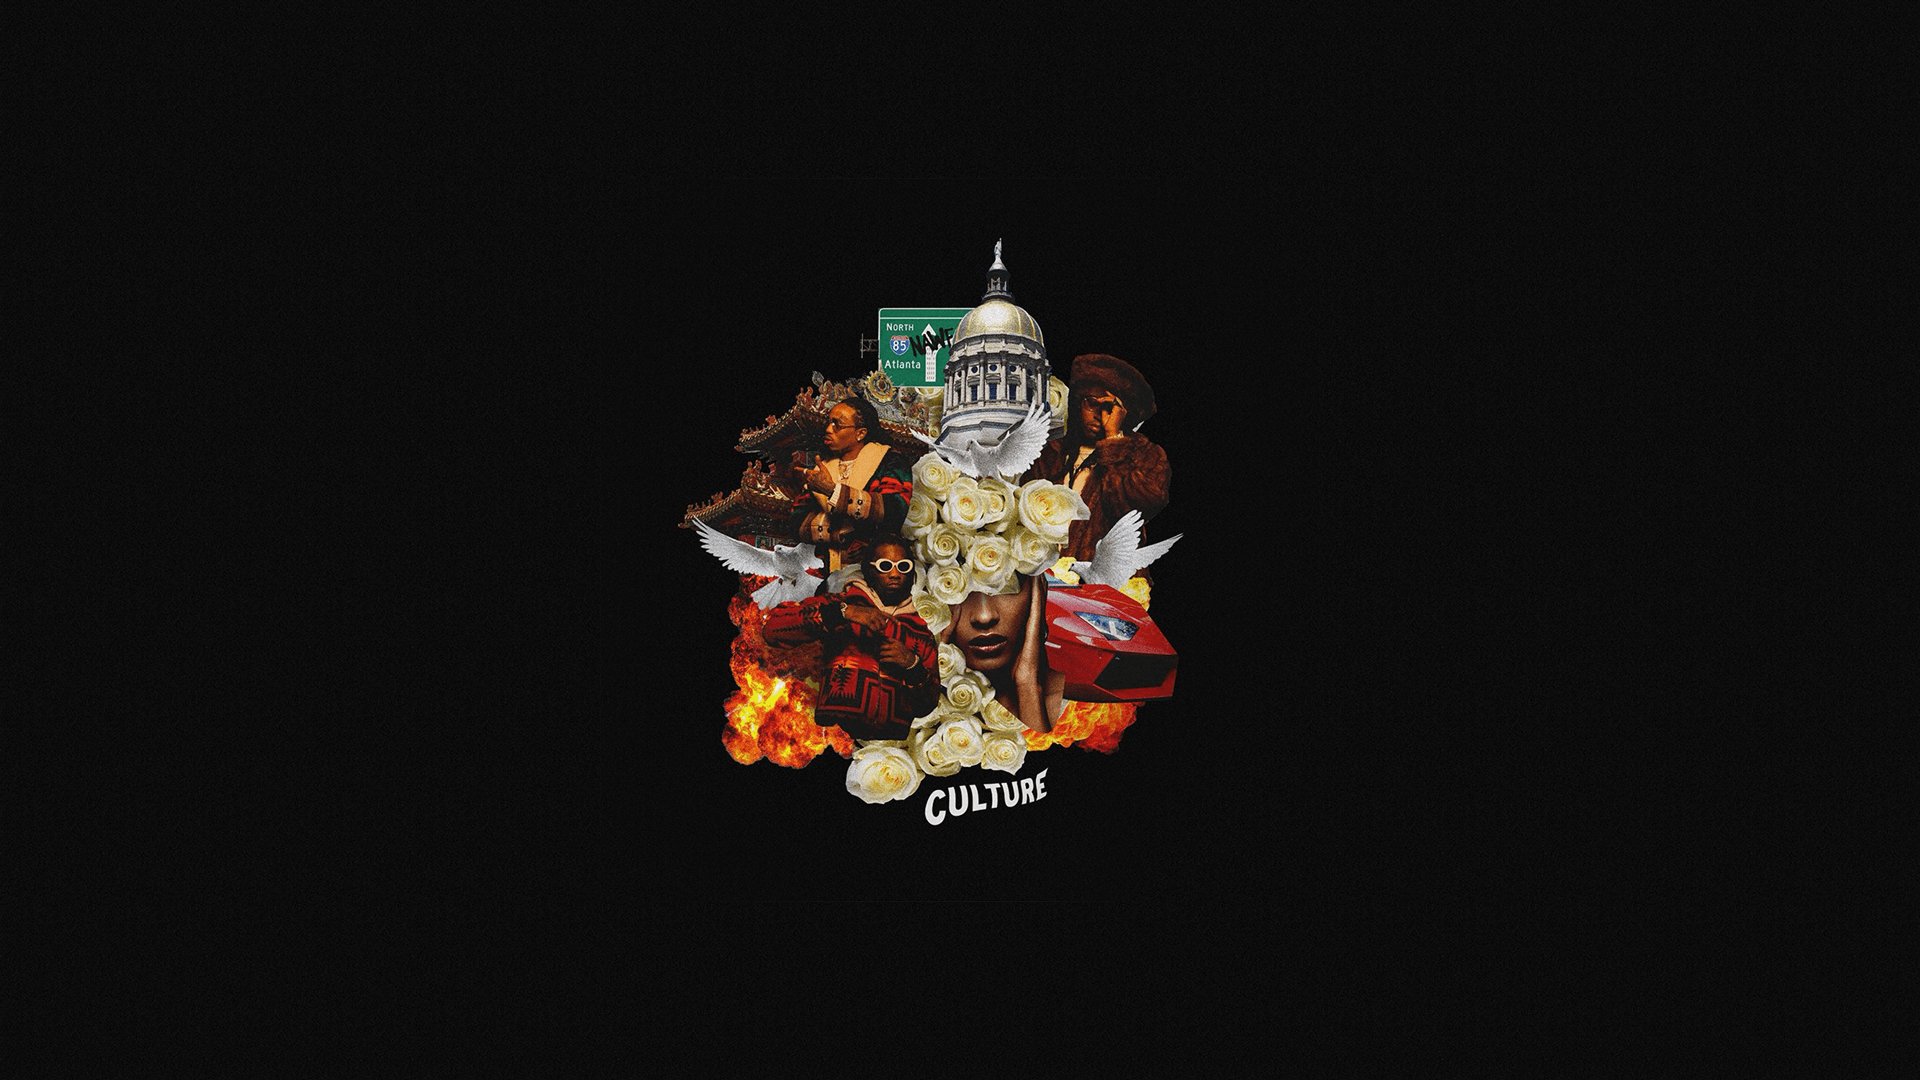 Migos Culture Album Wallpapers Top Free Migos Culture